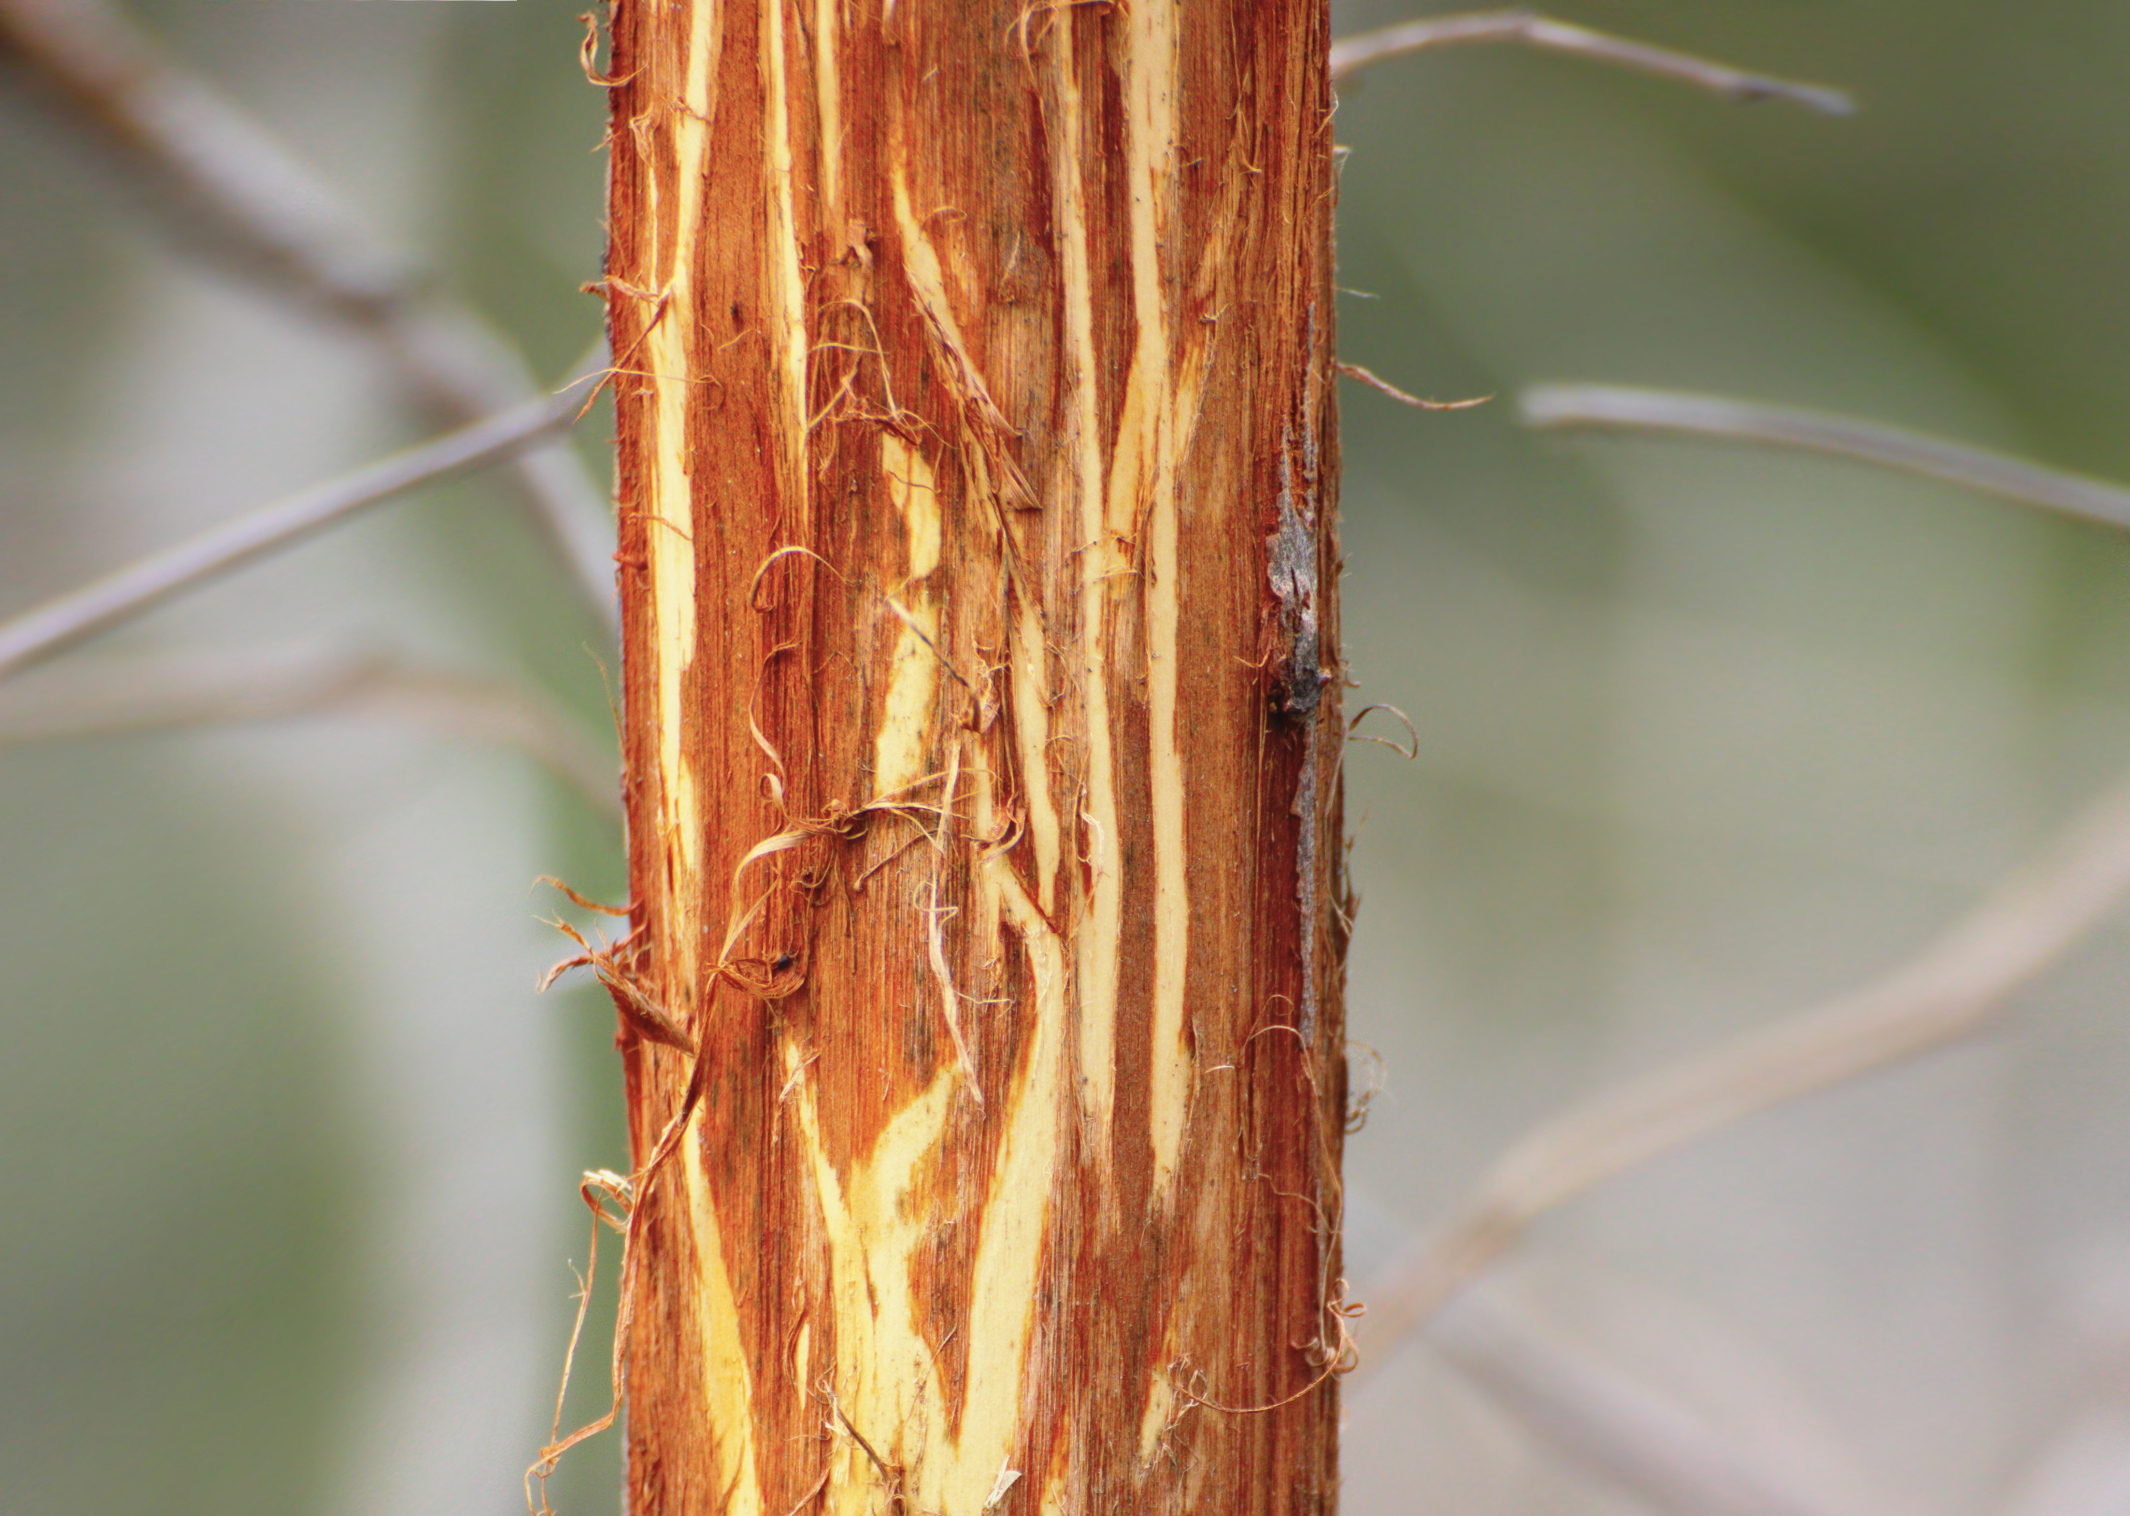 Deer_stripped_bark_shutterstock_137759681.jpg